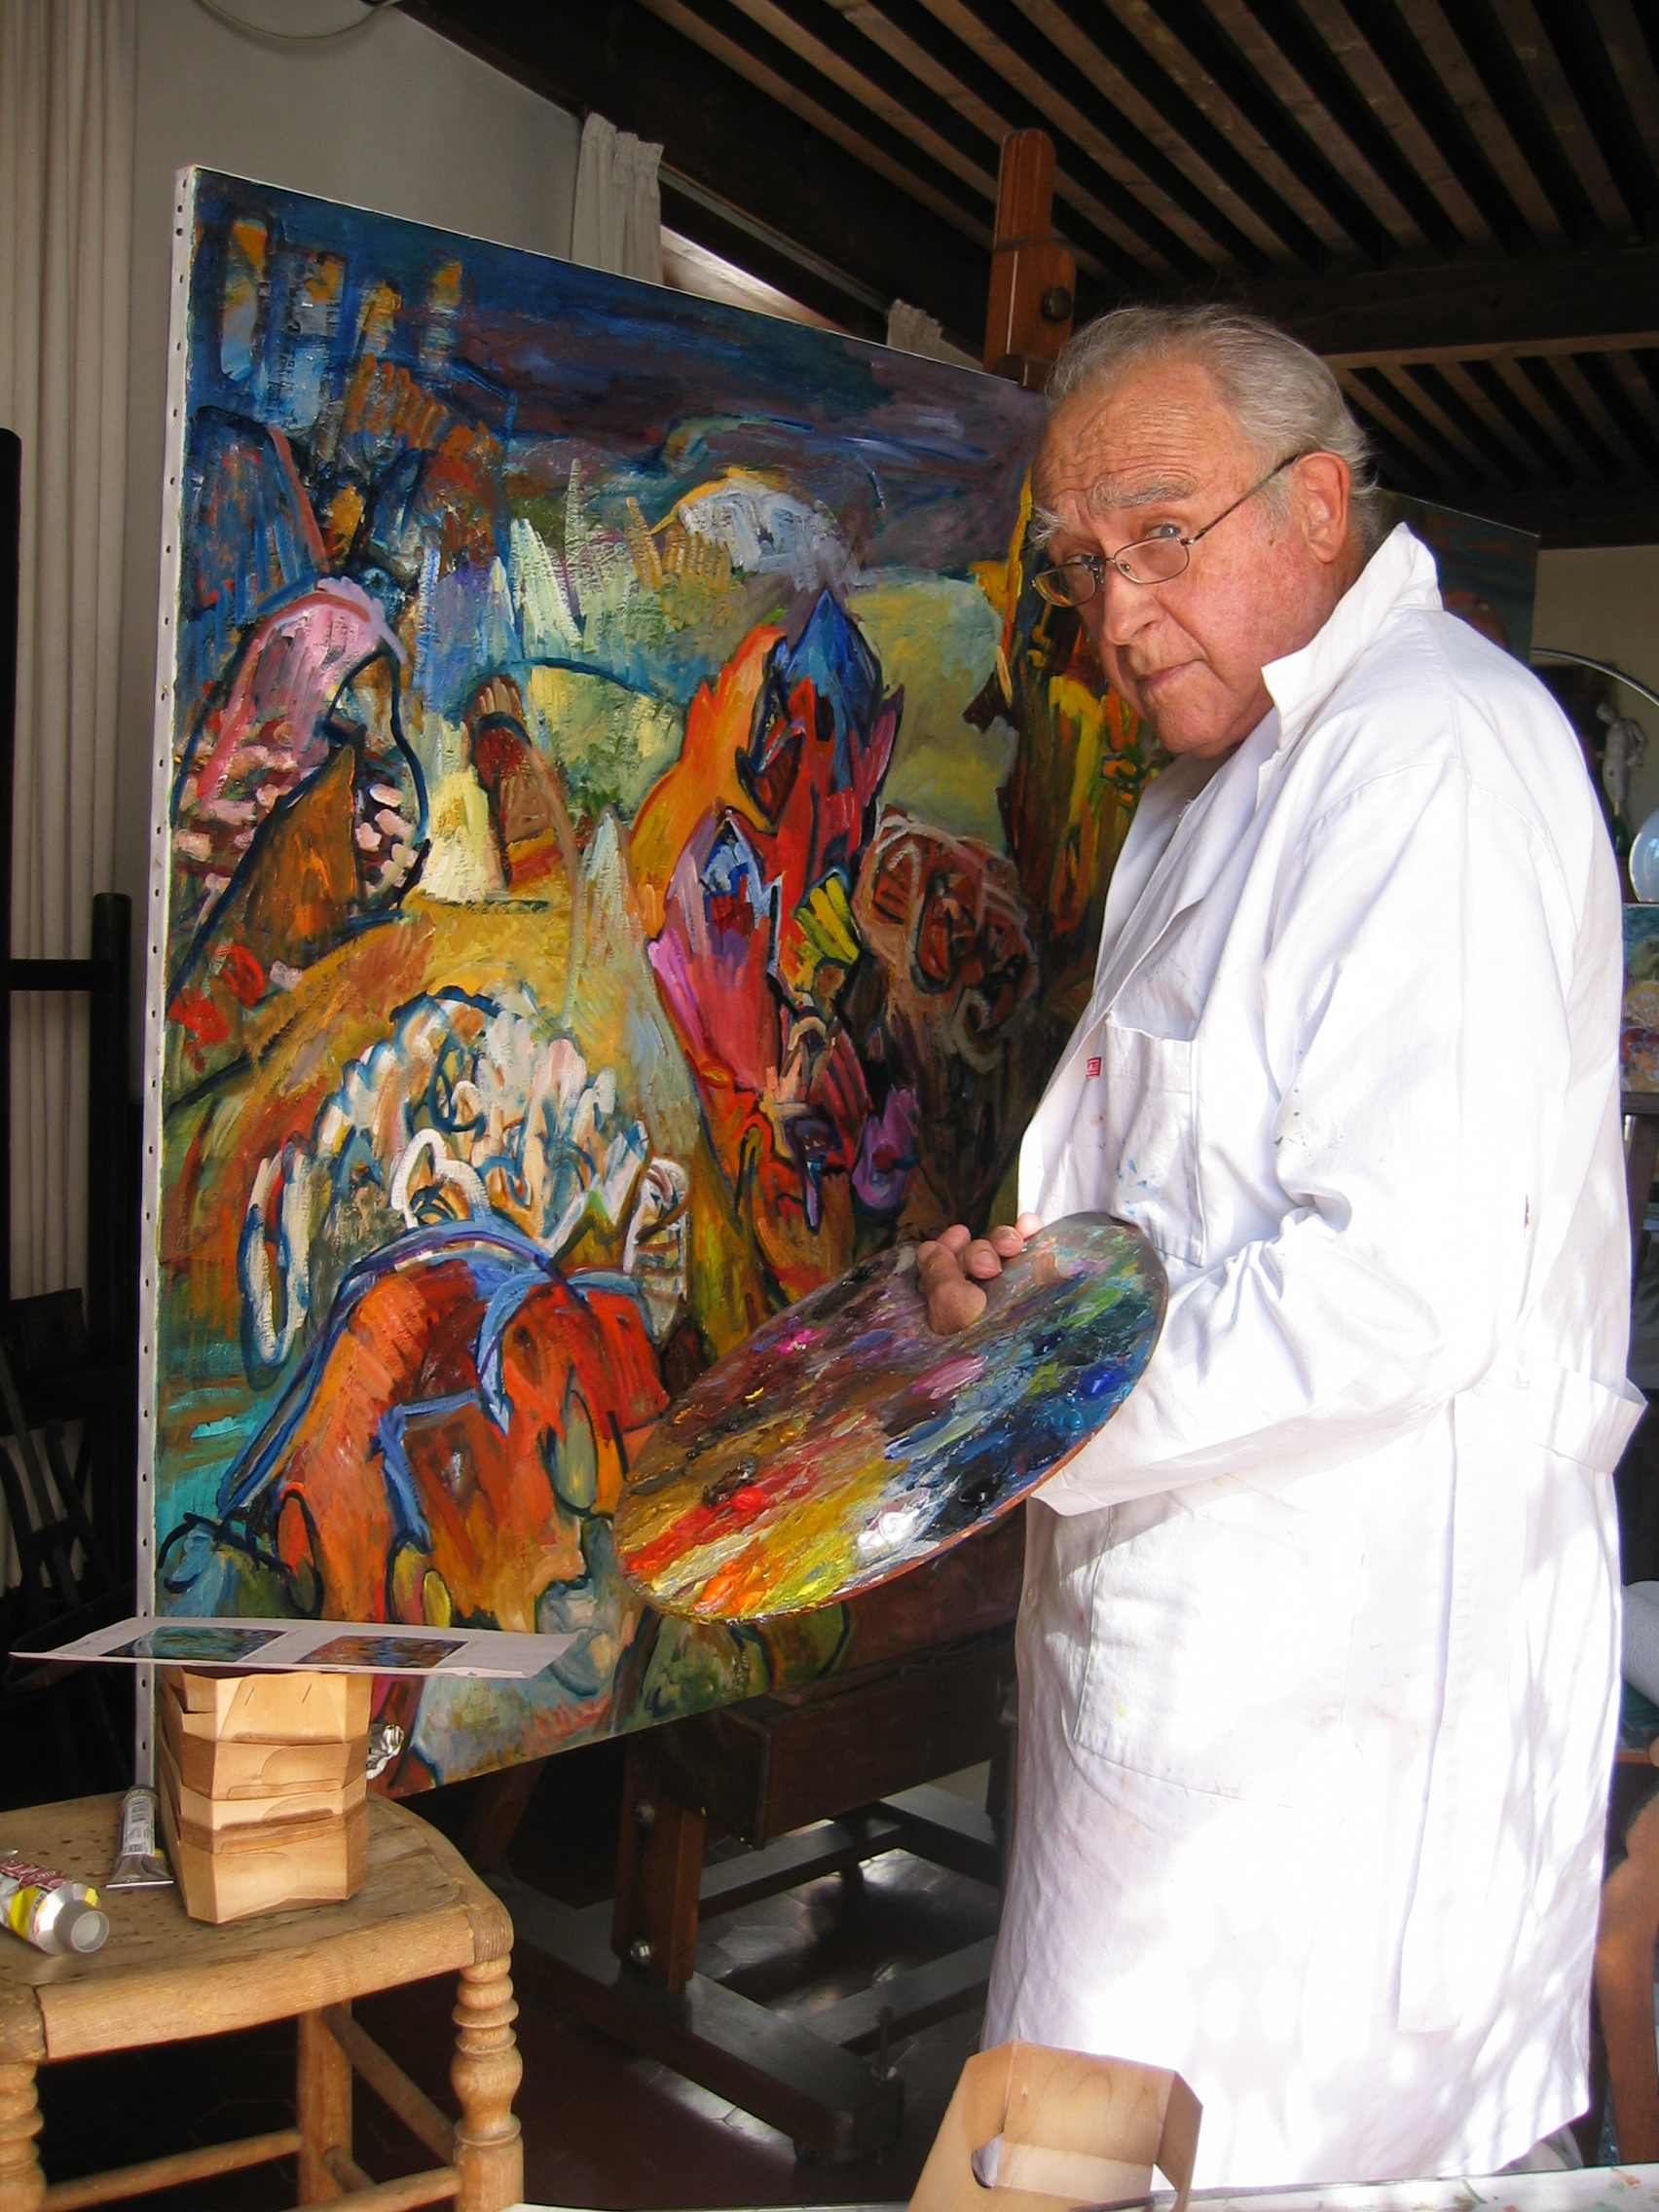 Jean dubrusk artiste peintre nouveau site officiel for Biographie artiste peintre